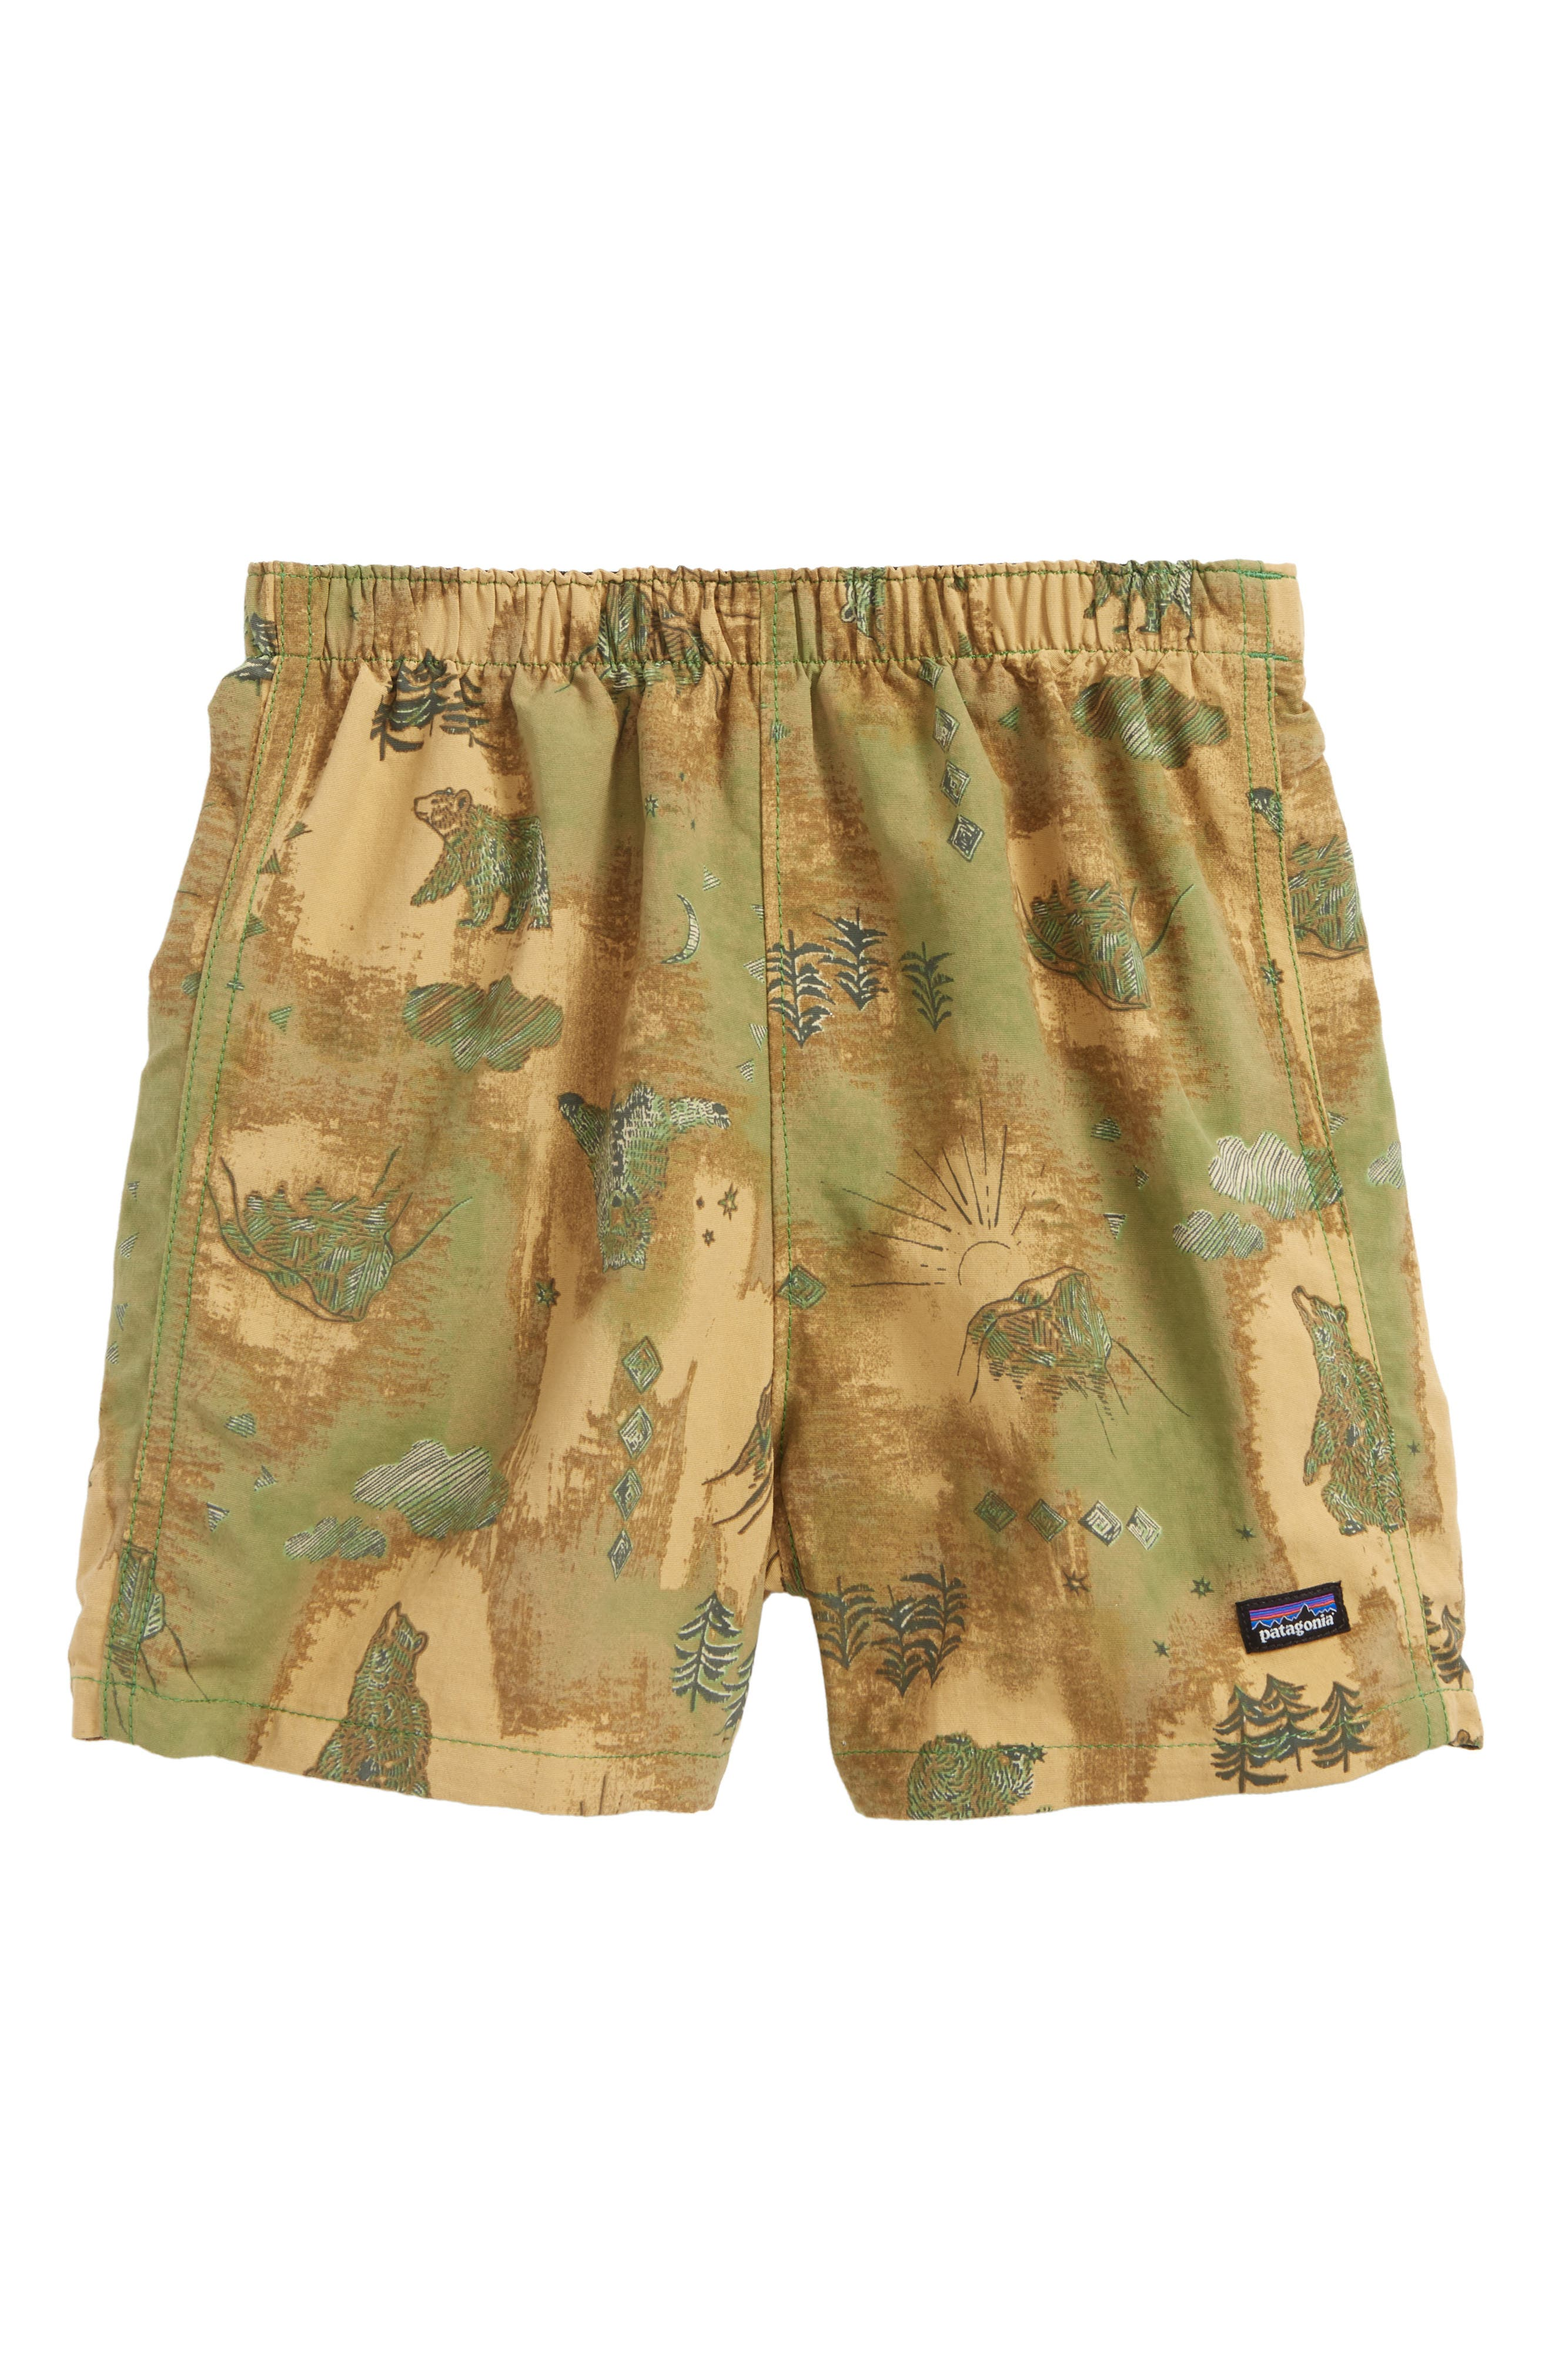 Patagonia Baby Baggies Swim Trunks (Toddler Boys)